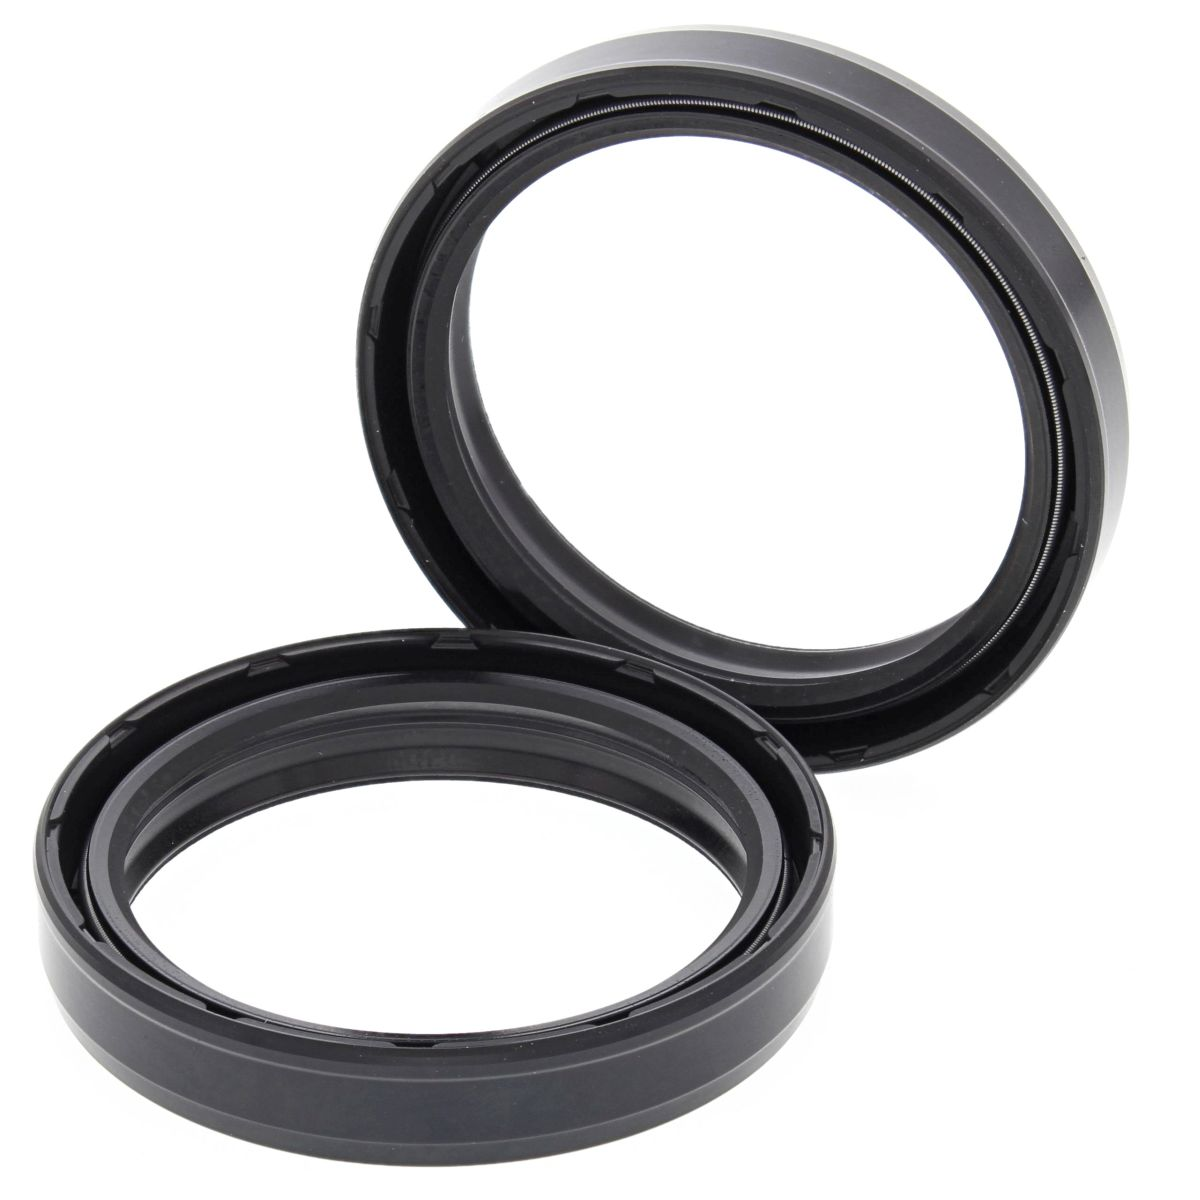 Fork oil seal kit 43x53x9 01bac1efd67